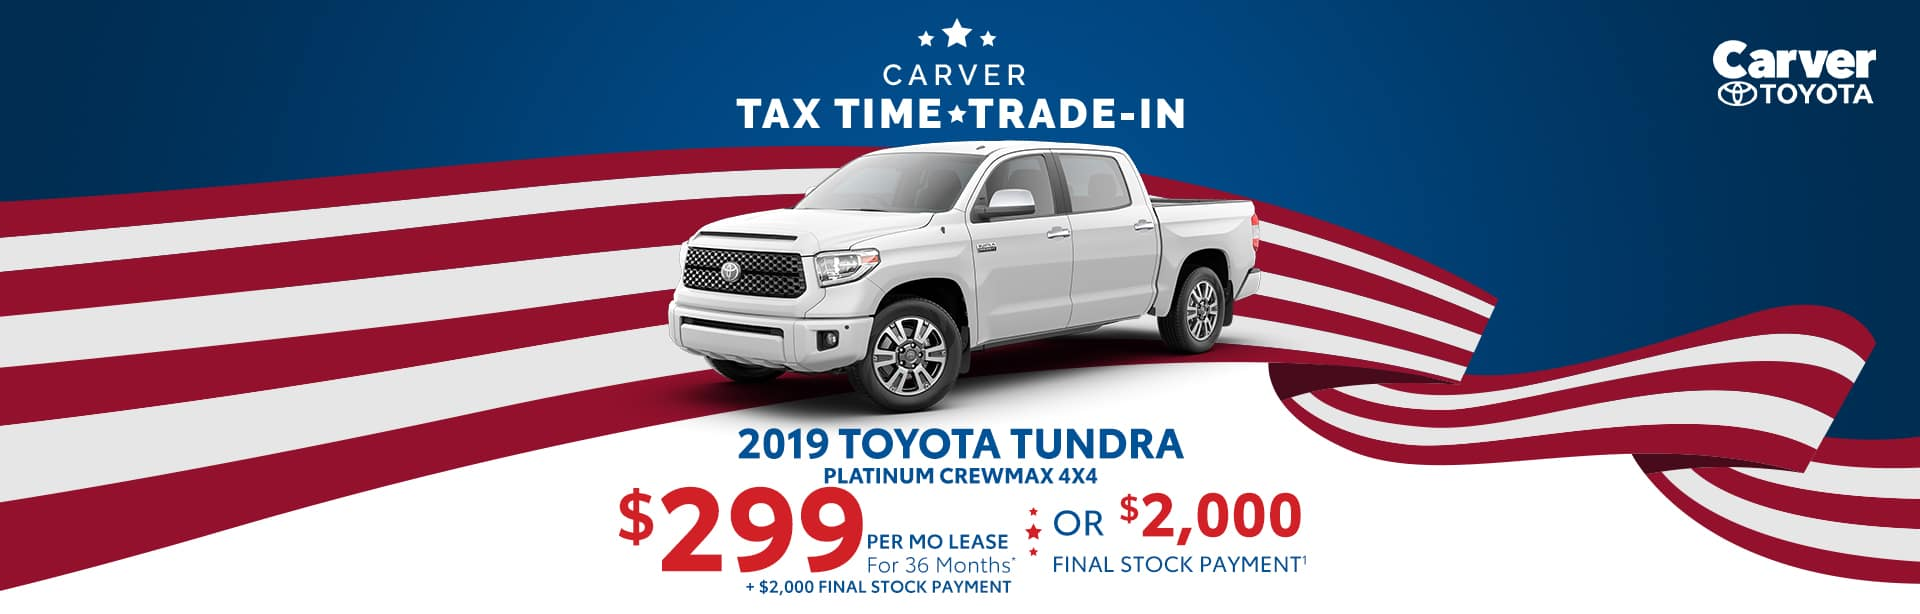 Lease a New Tundra for $299 a month near Columbus, Indiana